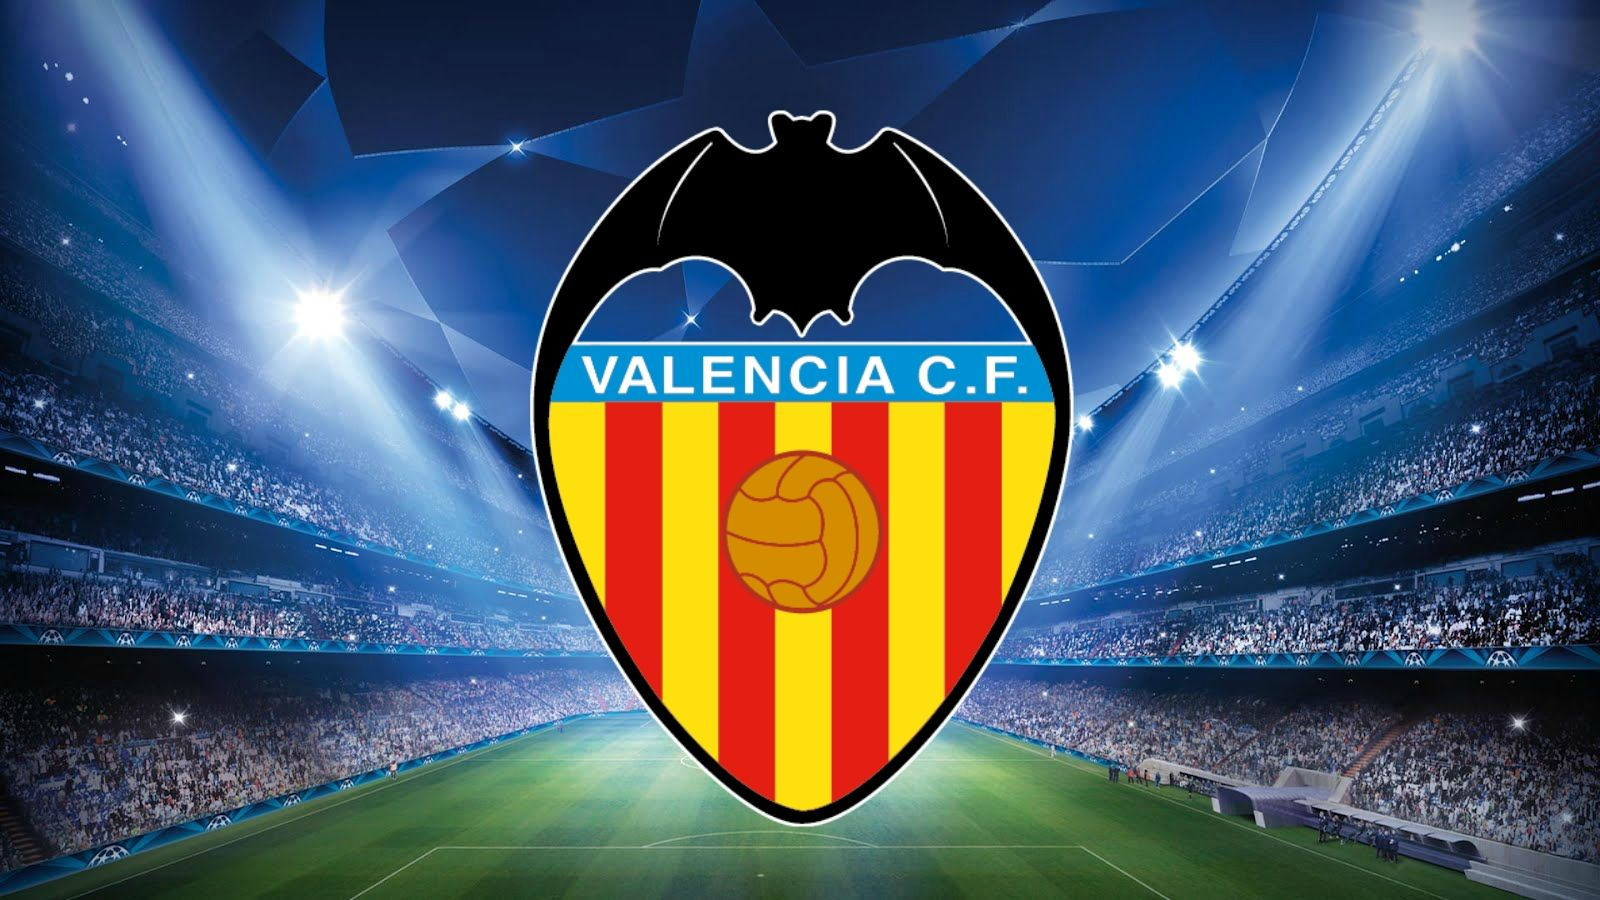 Nuevo Valencia Cf Wallpaper iPhone | Great Foofball Club